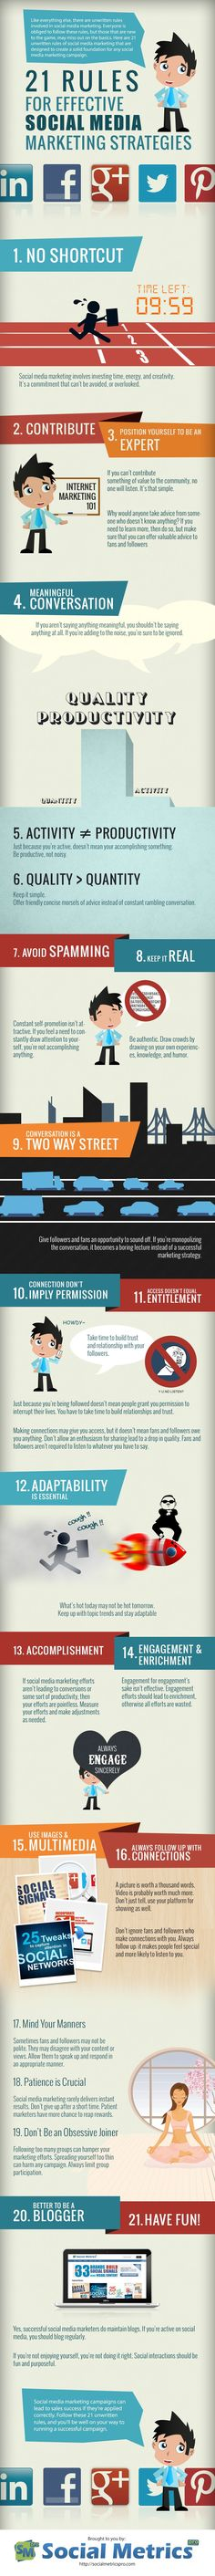 21 Rules for Effective Social Media Marketing #infographic